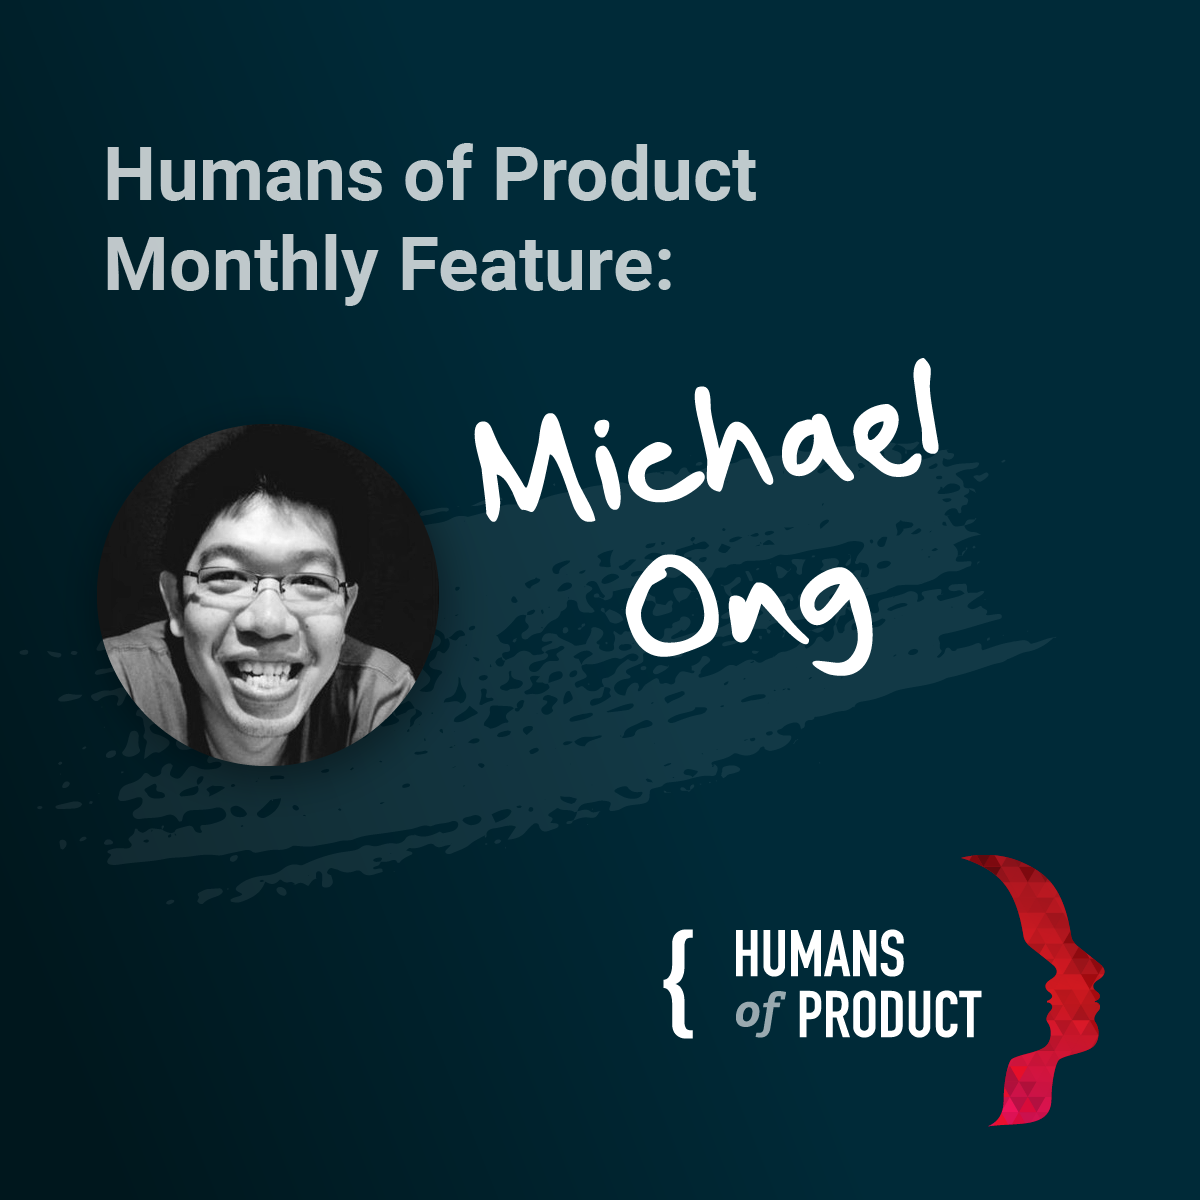 Humans of Product Michael